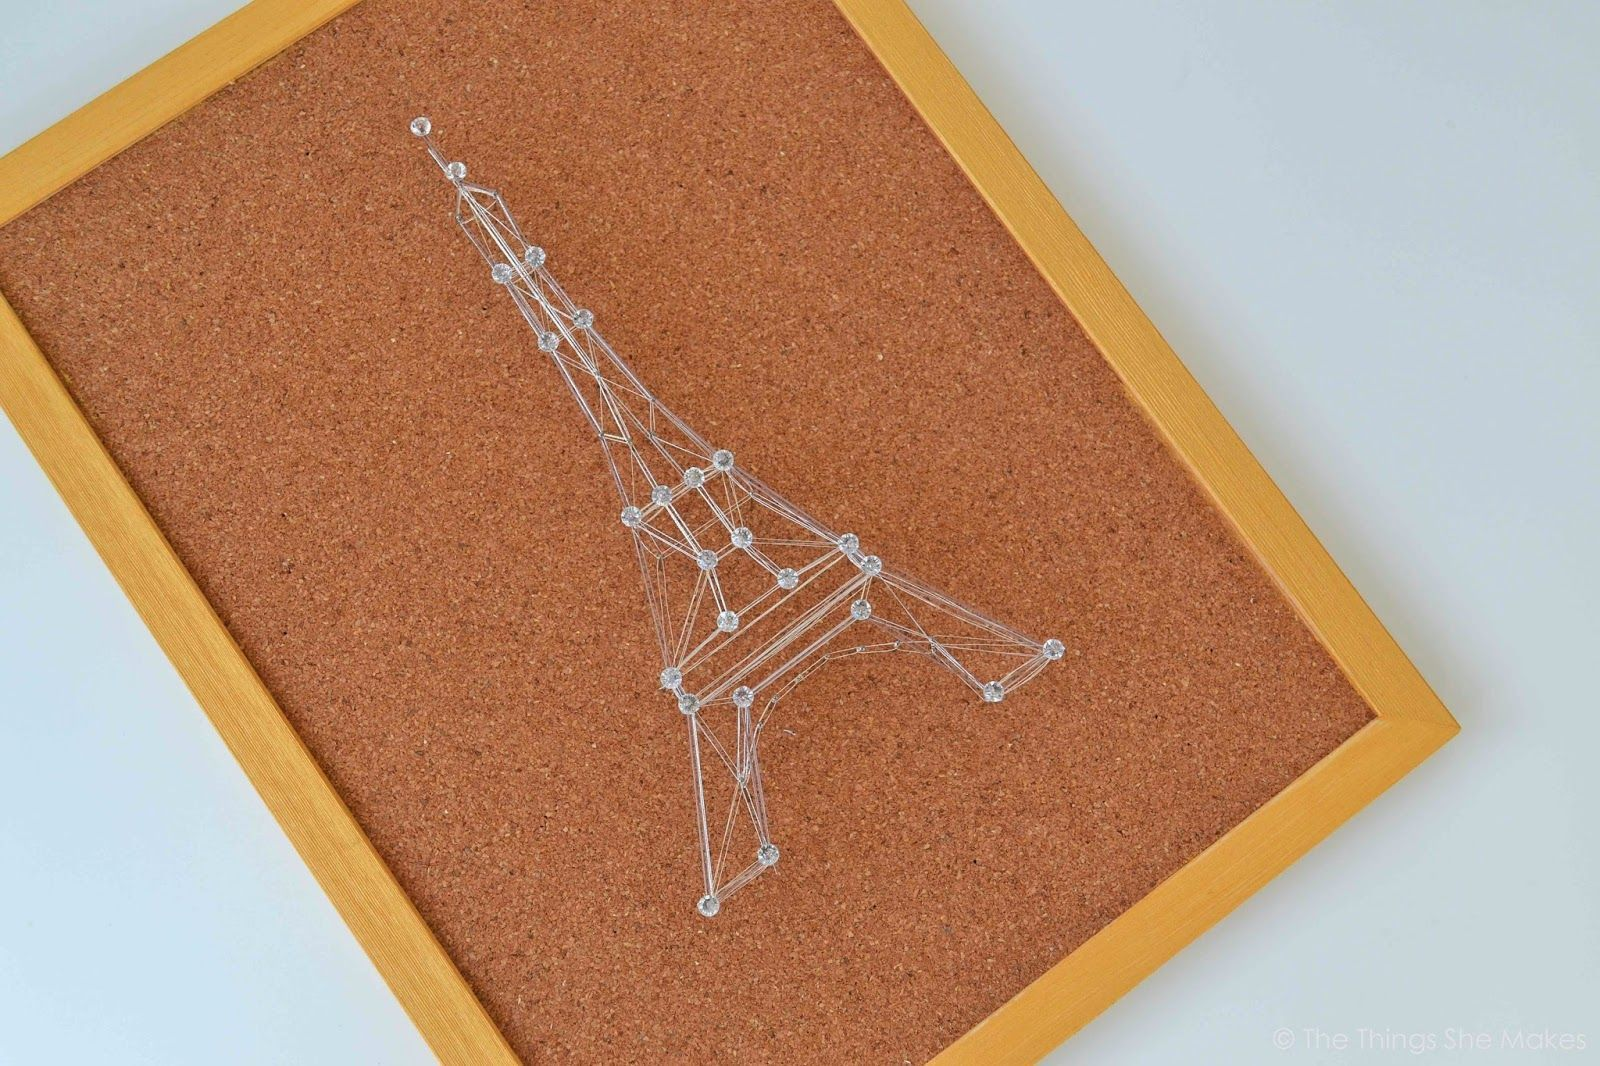 """Foto: Reprodução / <a href="""" http://thethingsshemakes.blogspot.co.uk/2014/03/pin-and-thread-eiffel-tower.html"""" target=""""_blank"""">The things she makes</a>"""